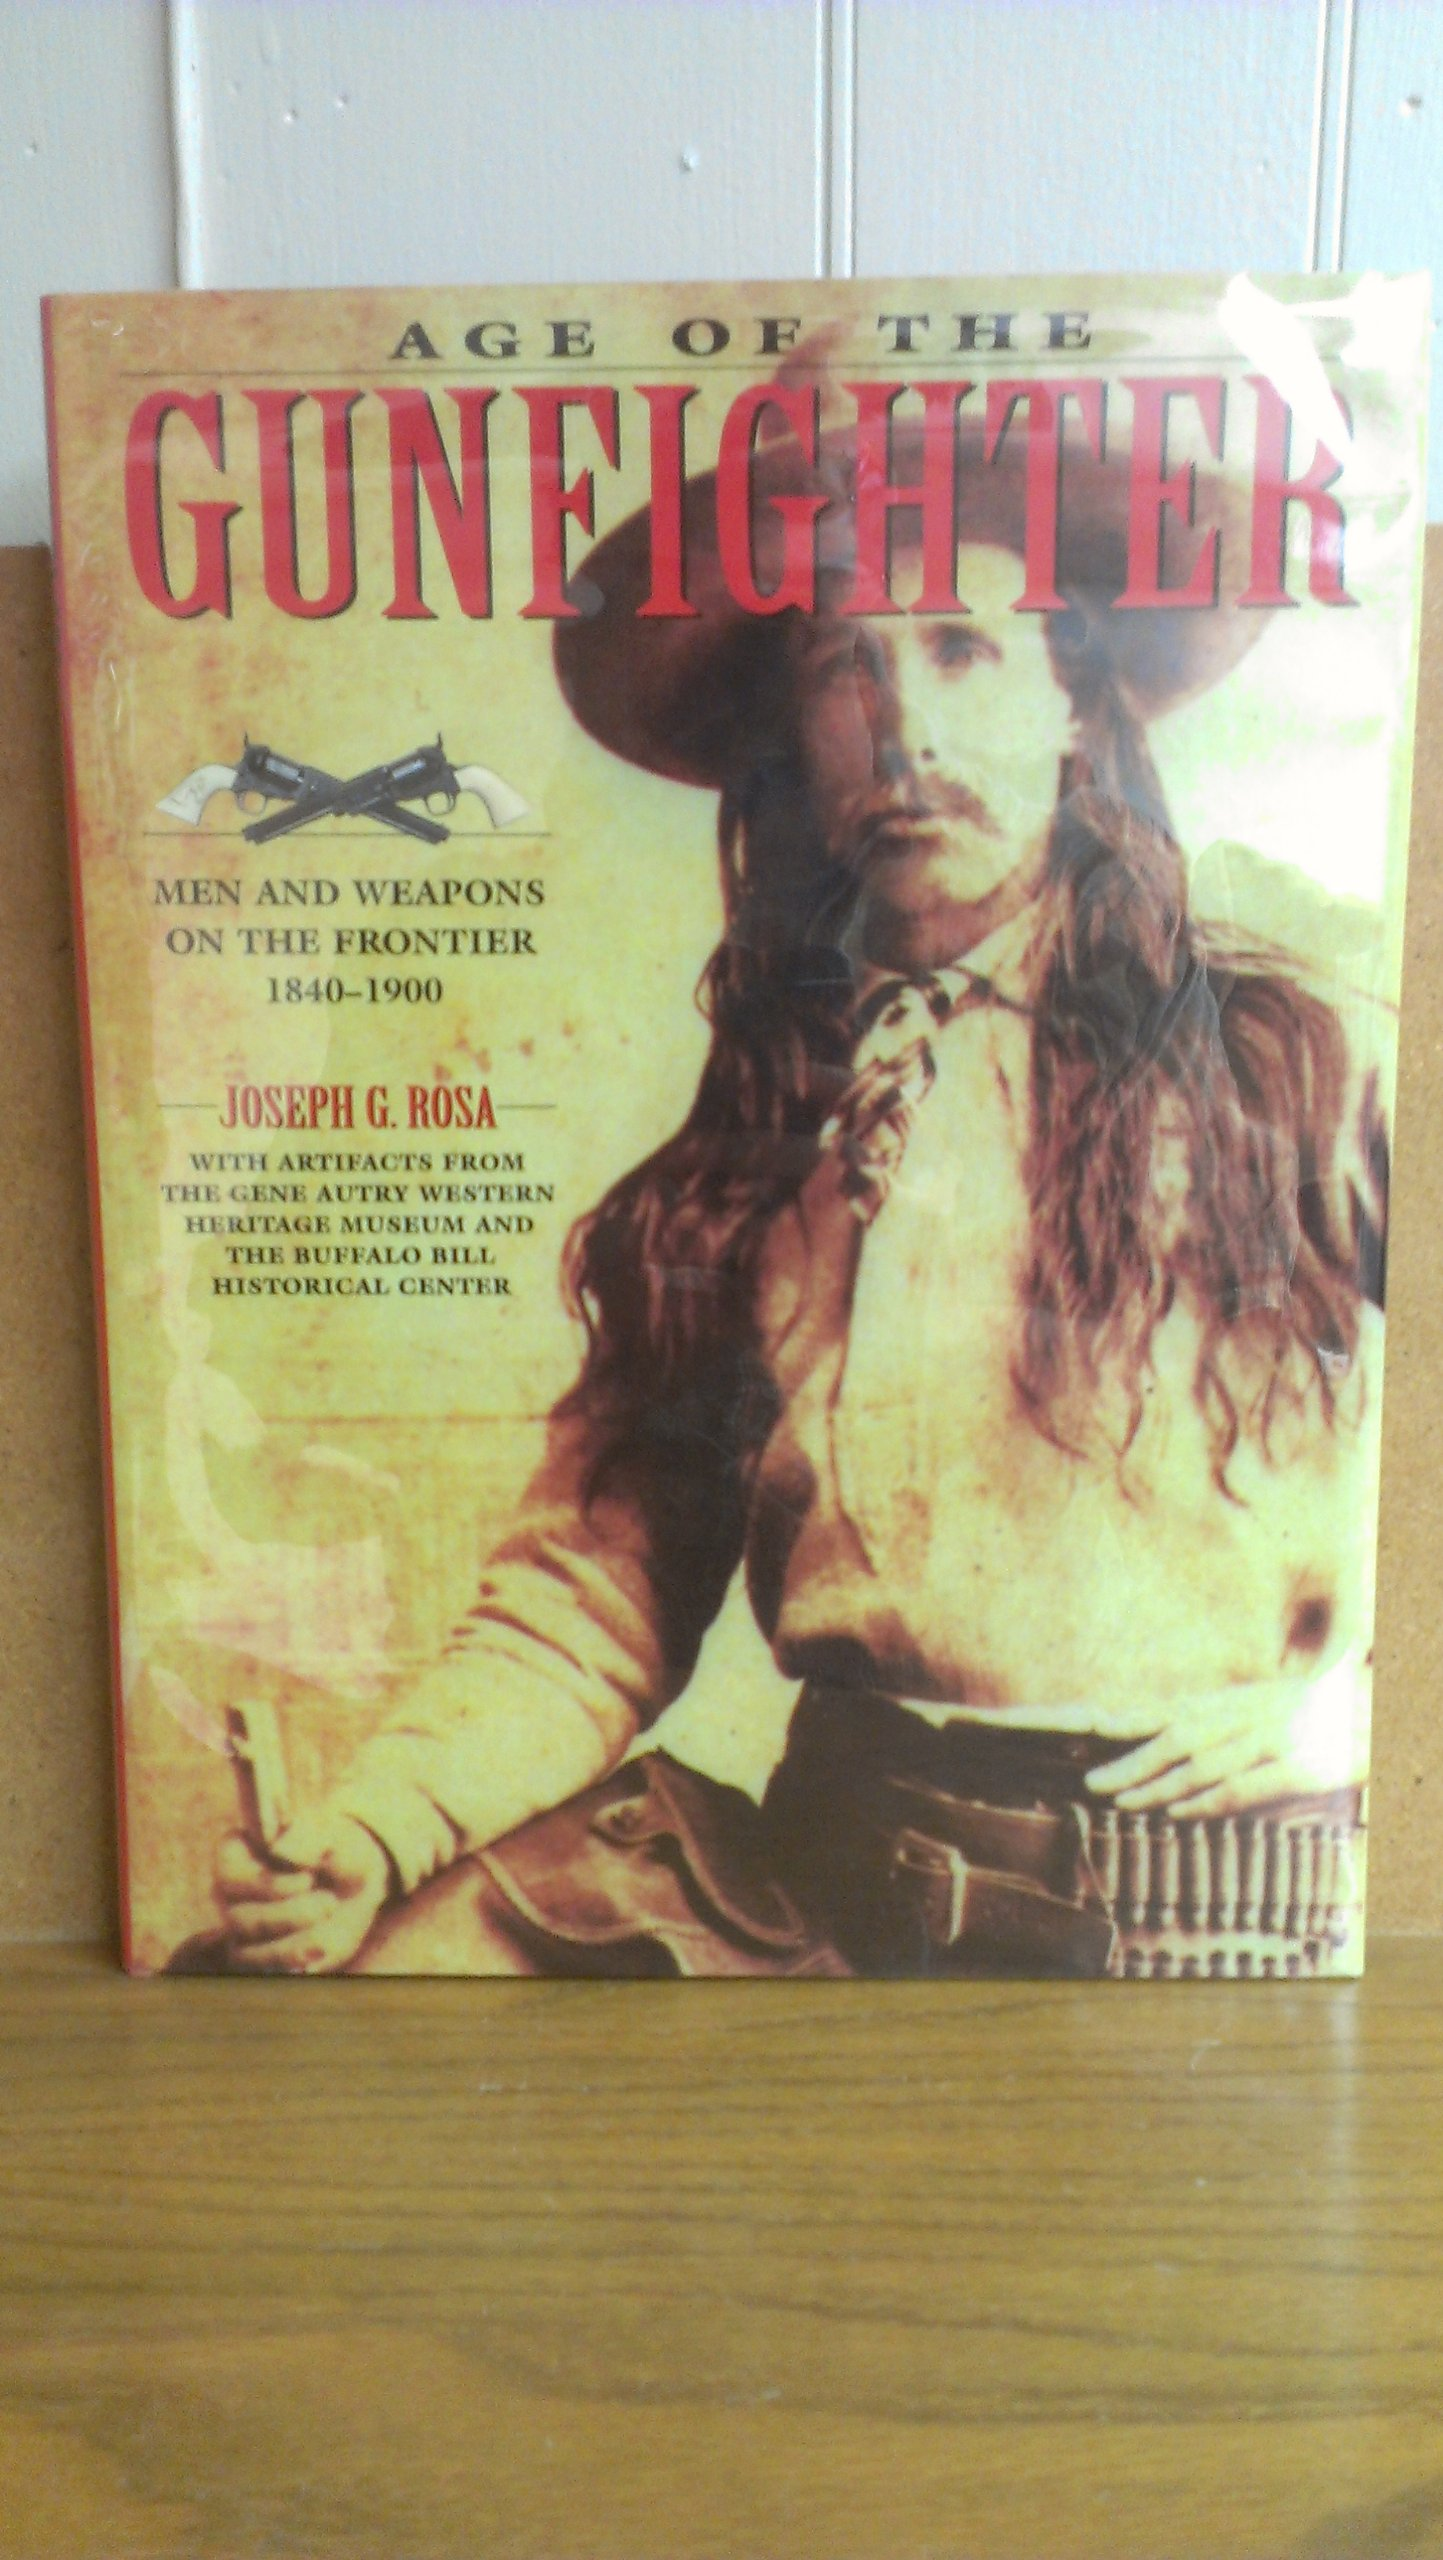 Download The Age of the Gunfighter: Men and Weapons on the Frontier, 1840-1900 ebook